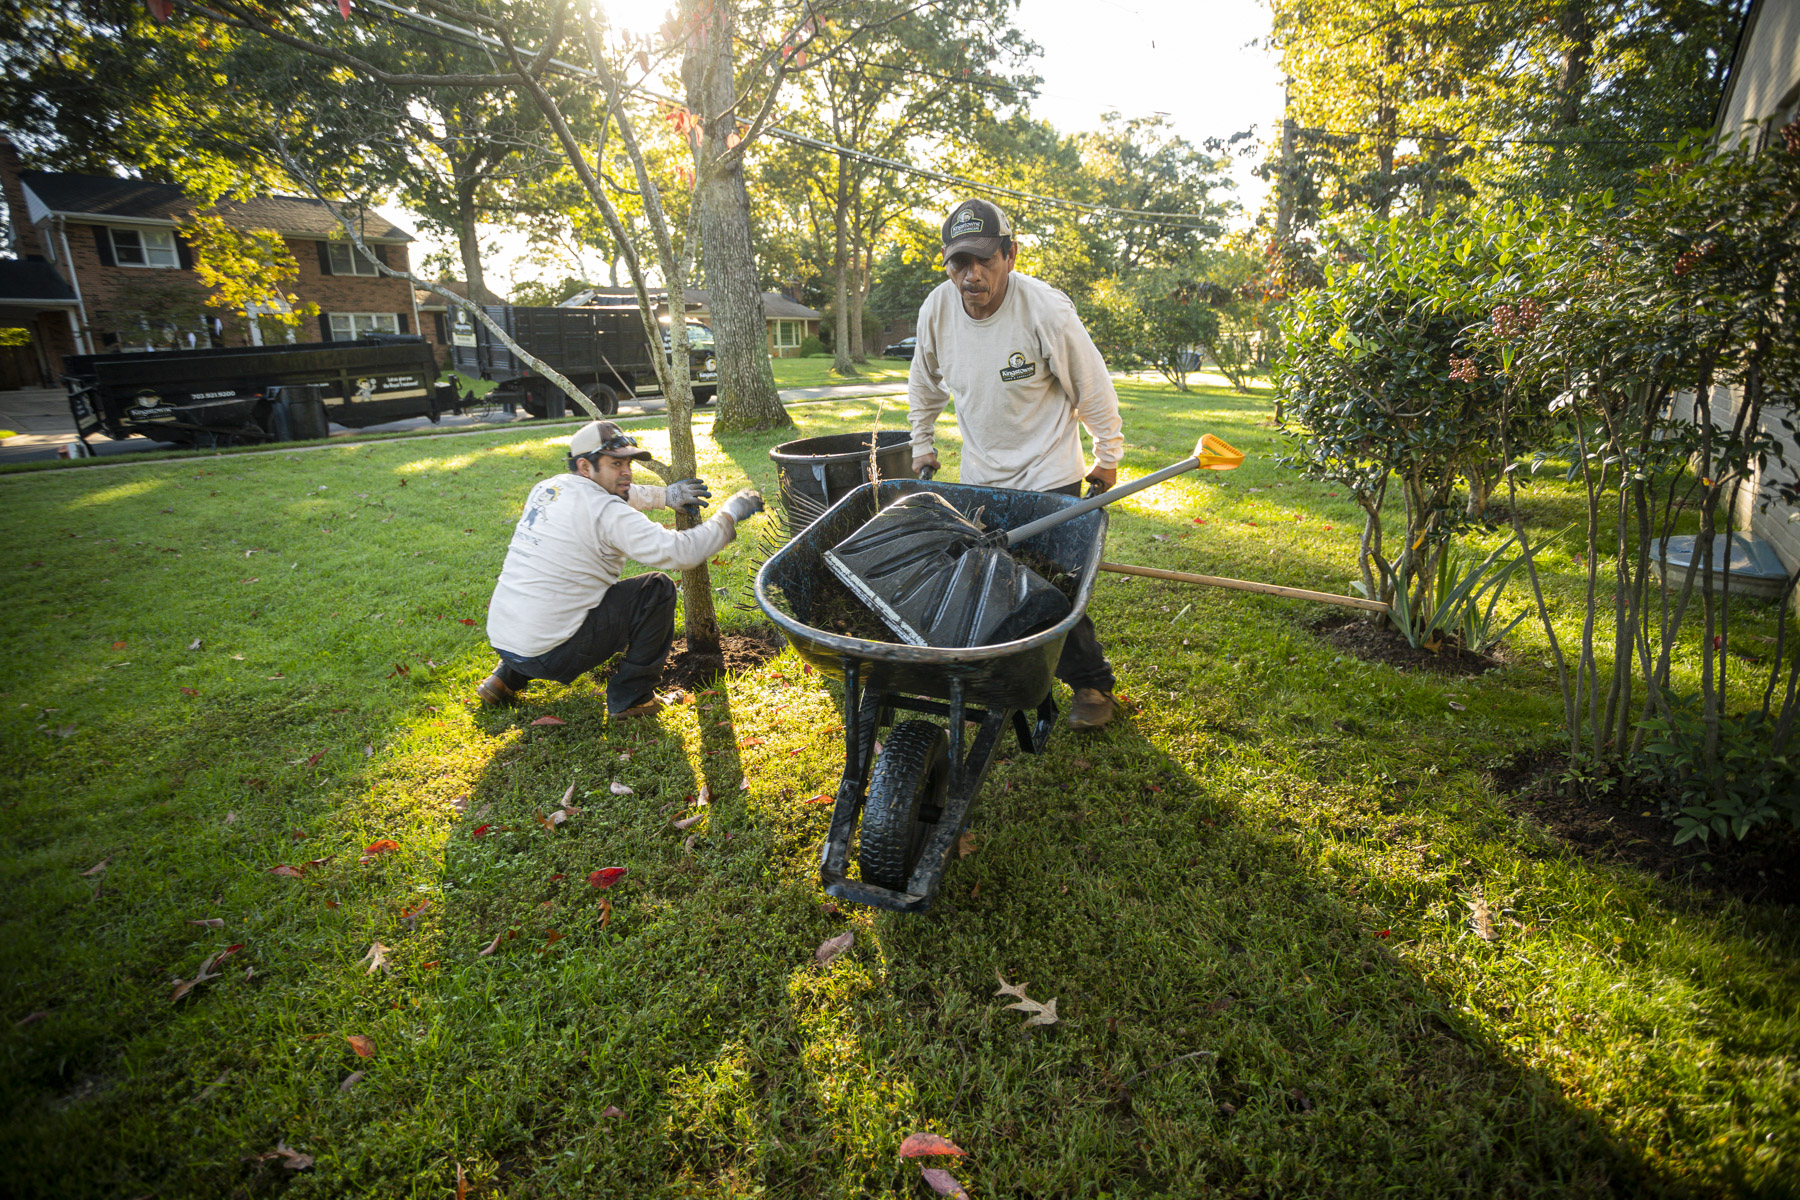 3 Interview Questions to Ponder When Considering a Lawn Care or Landscaping Job Opportunity